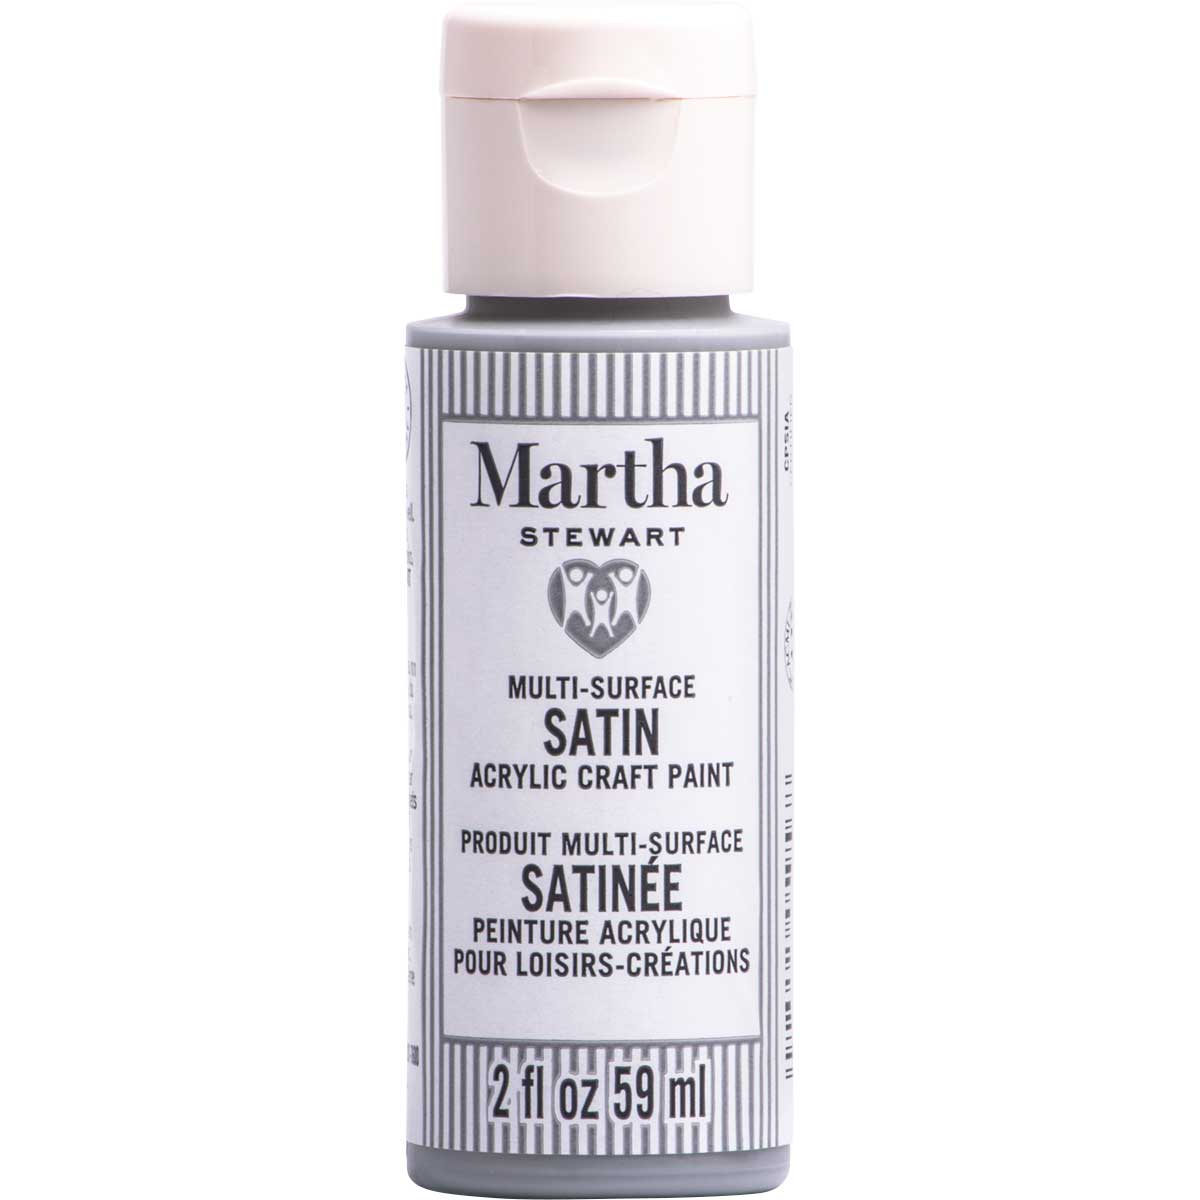 Martha Stewart ® Multi-Surface Satin Acrylic Craft Paint CPSIA - Cool Gray, 2 oz.